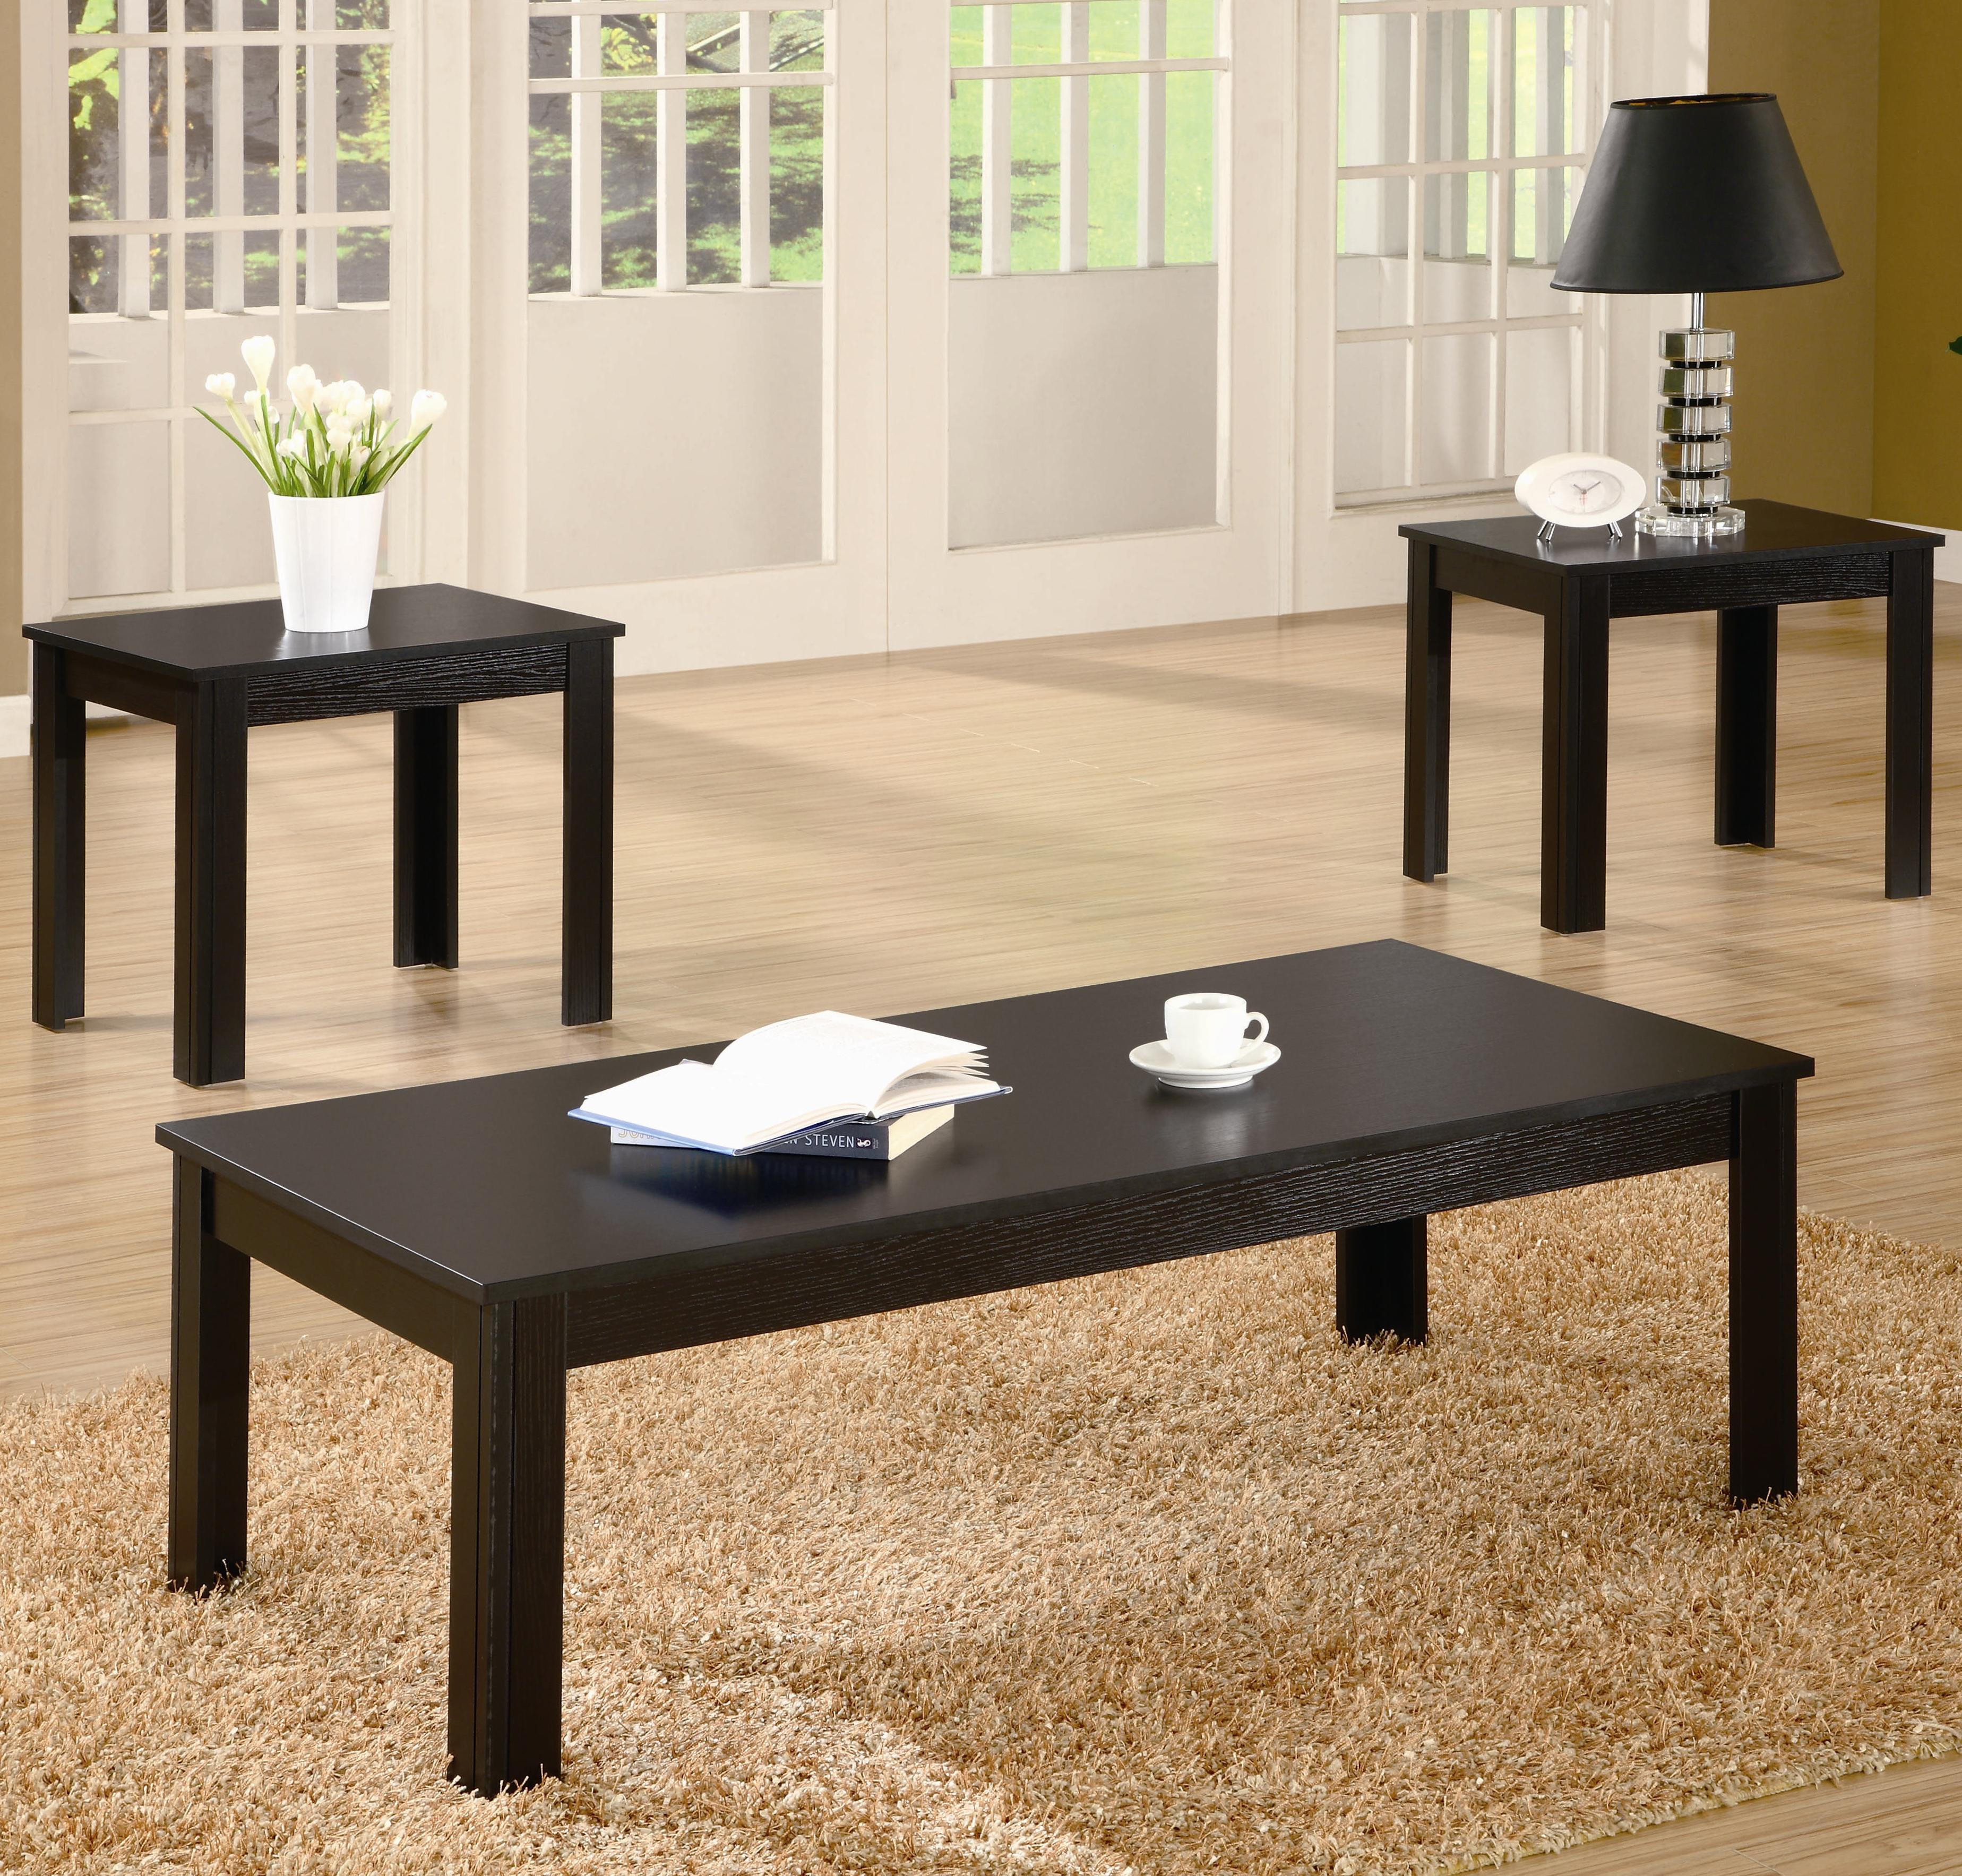 Coffee Table 3 Piece Table Set 700225 Black 3 Piece Occasional Table Set Black 3 Set Square Shape (Image 3 of 10)